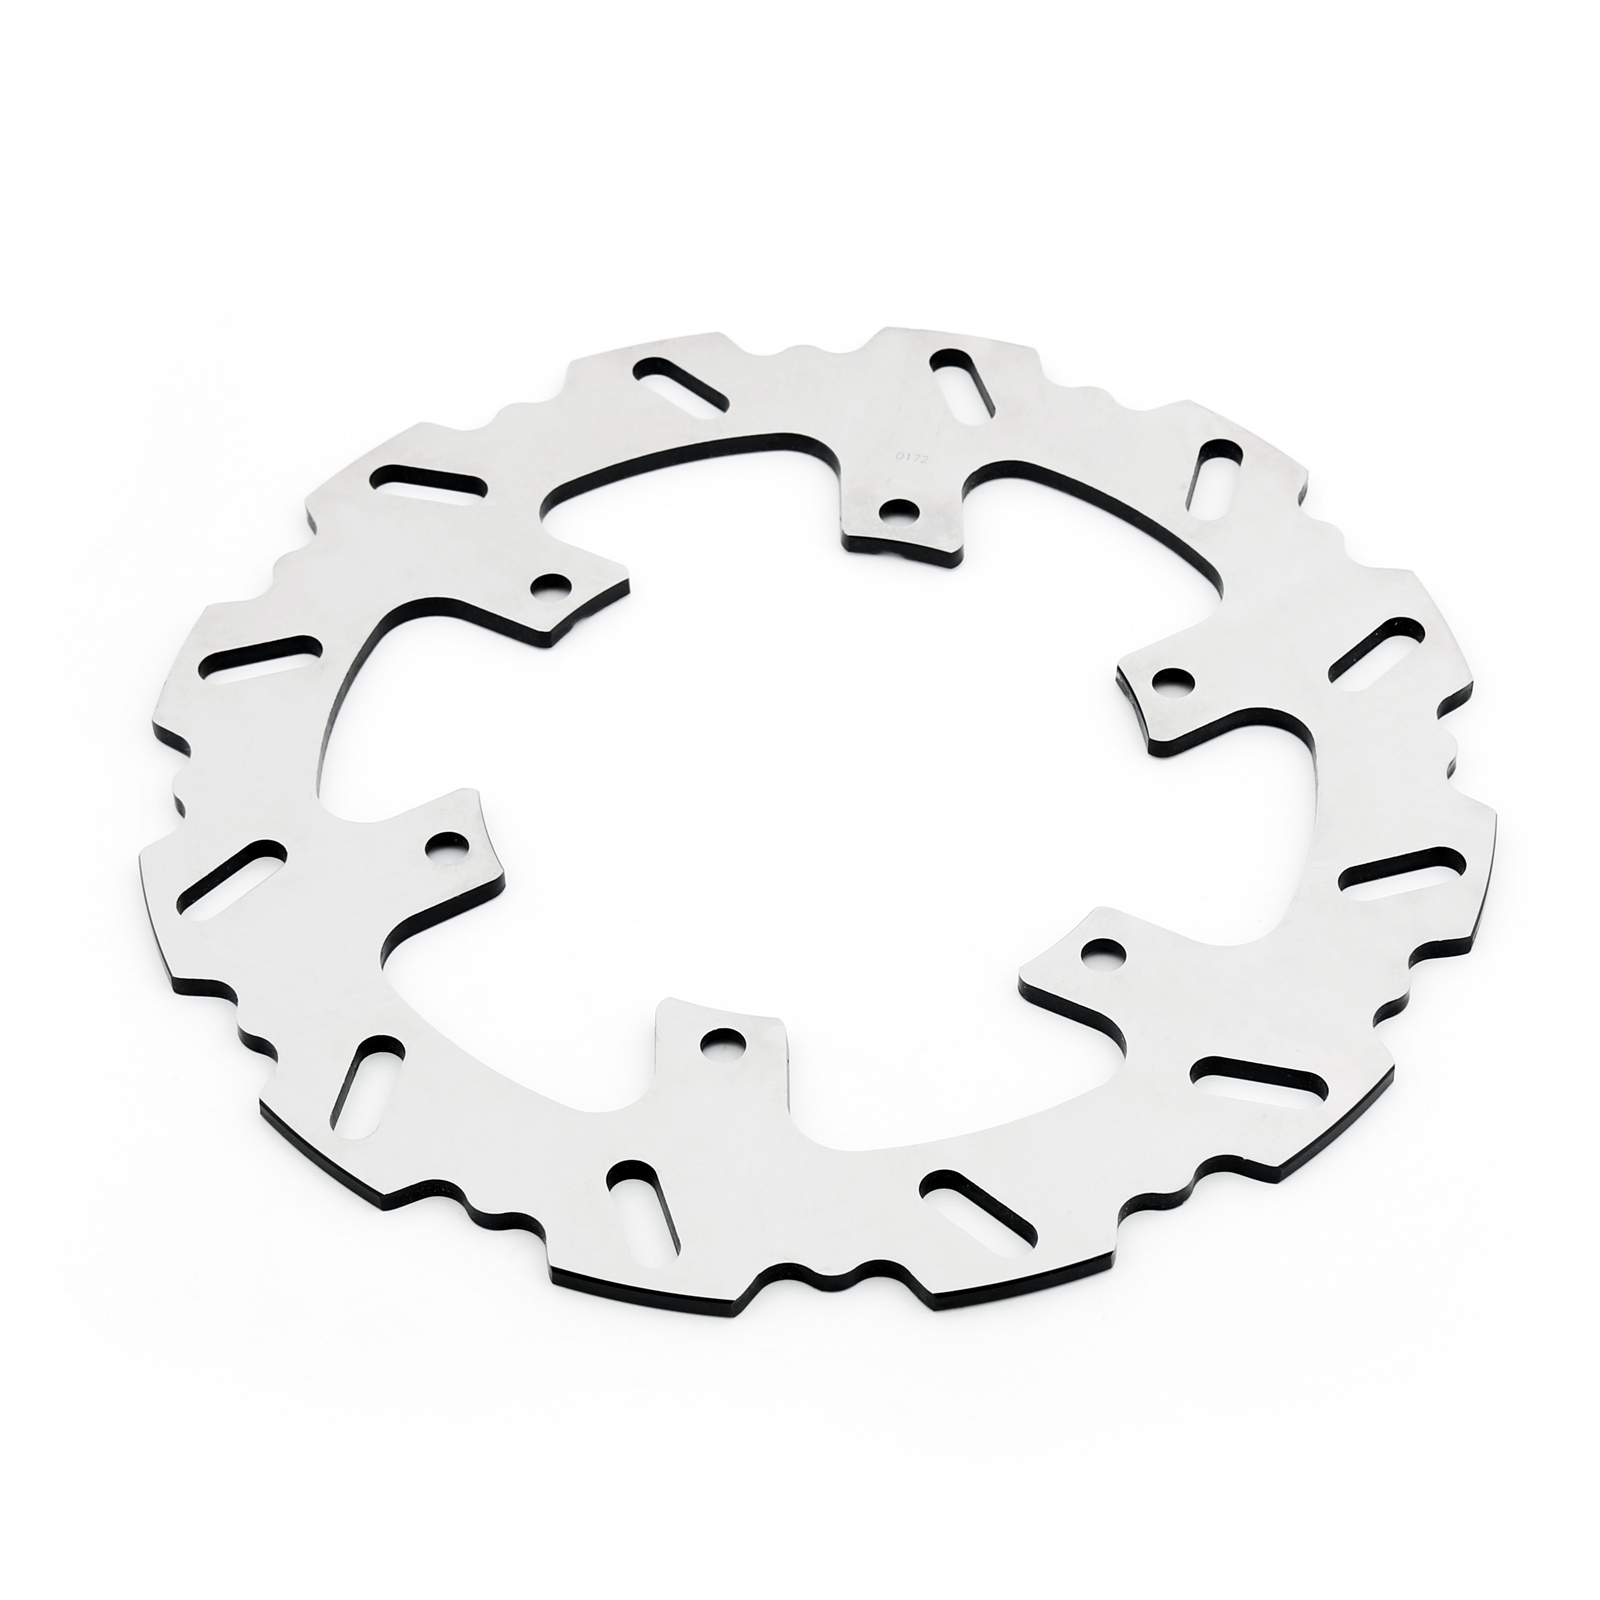 Rear Brake Disc Rotor For Yamaha Fz X 750 Xj900 Fzr Fzs